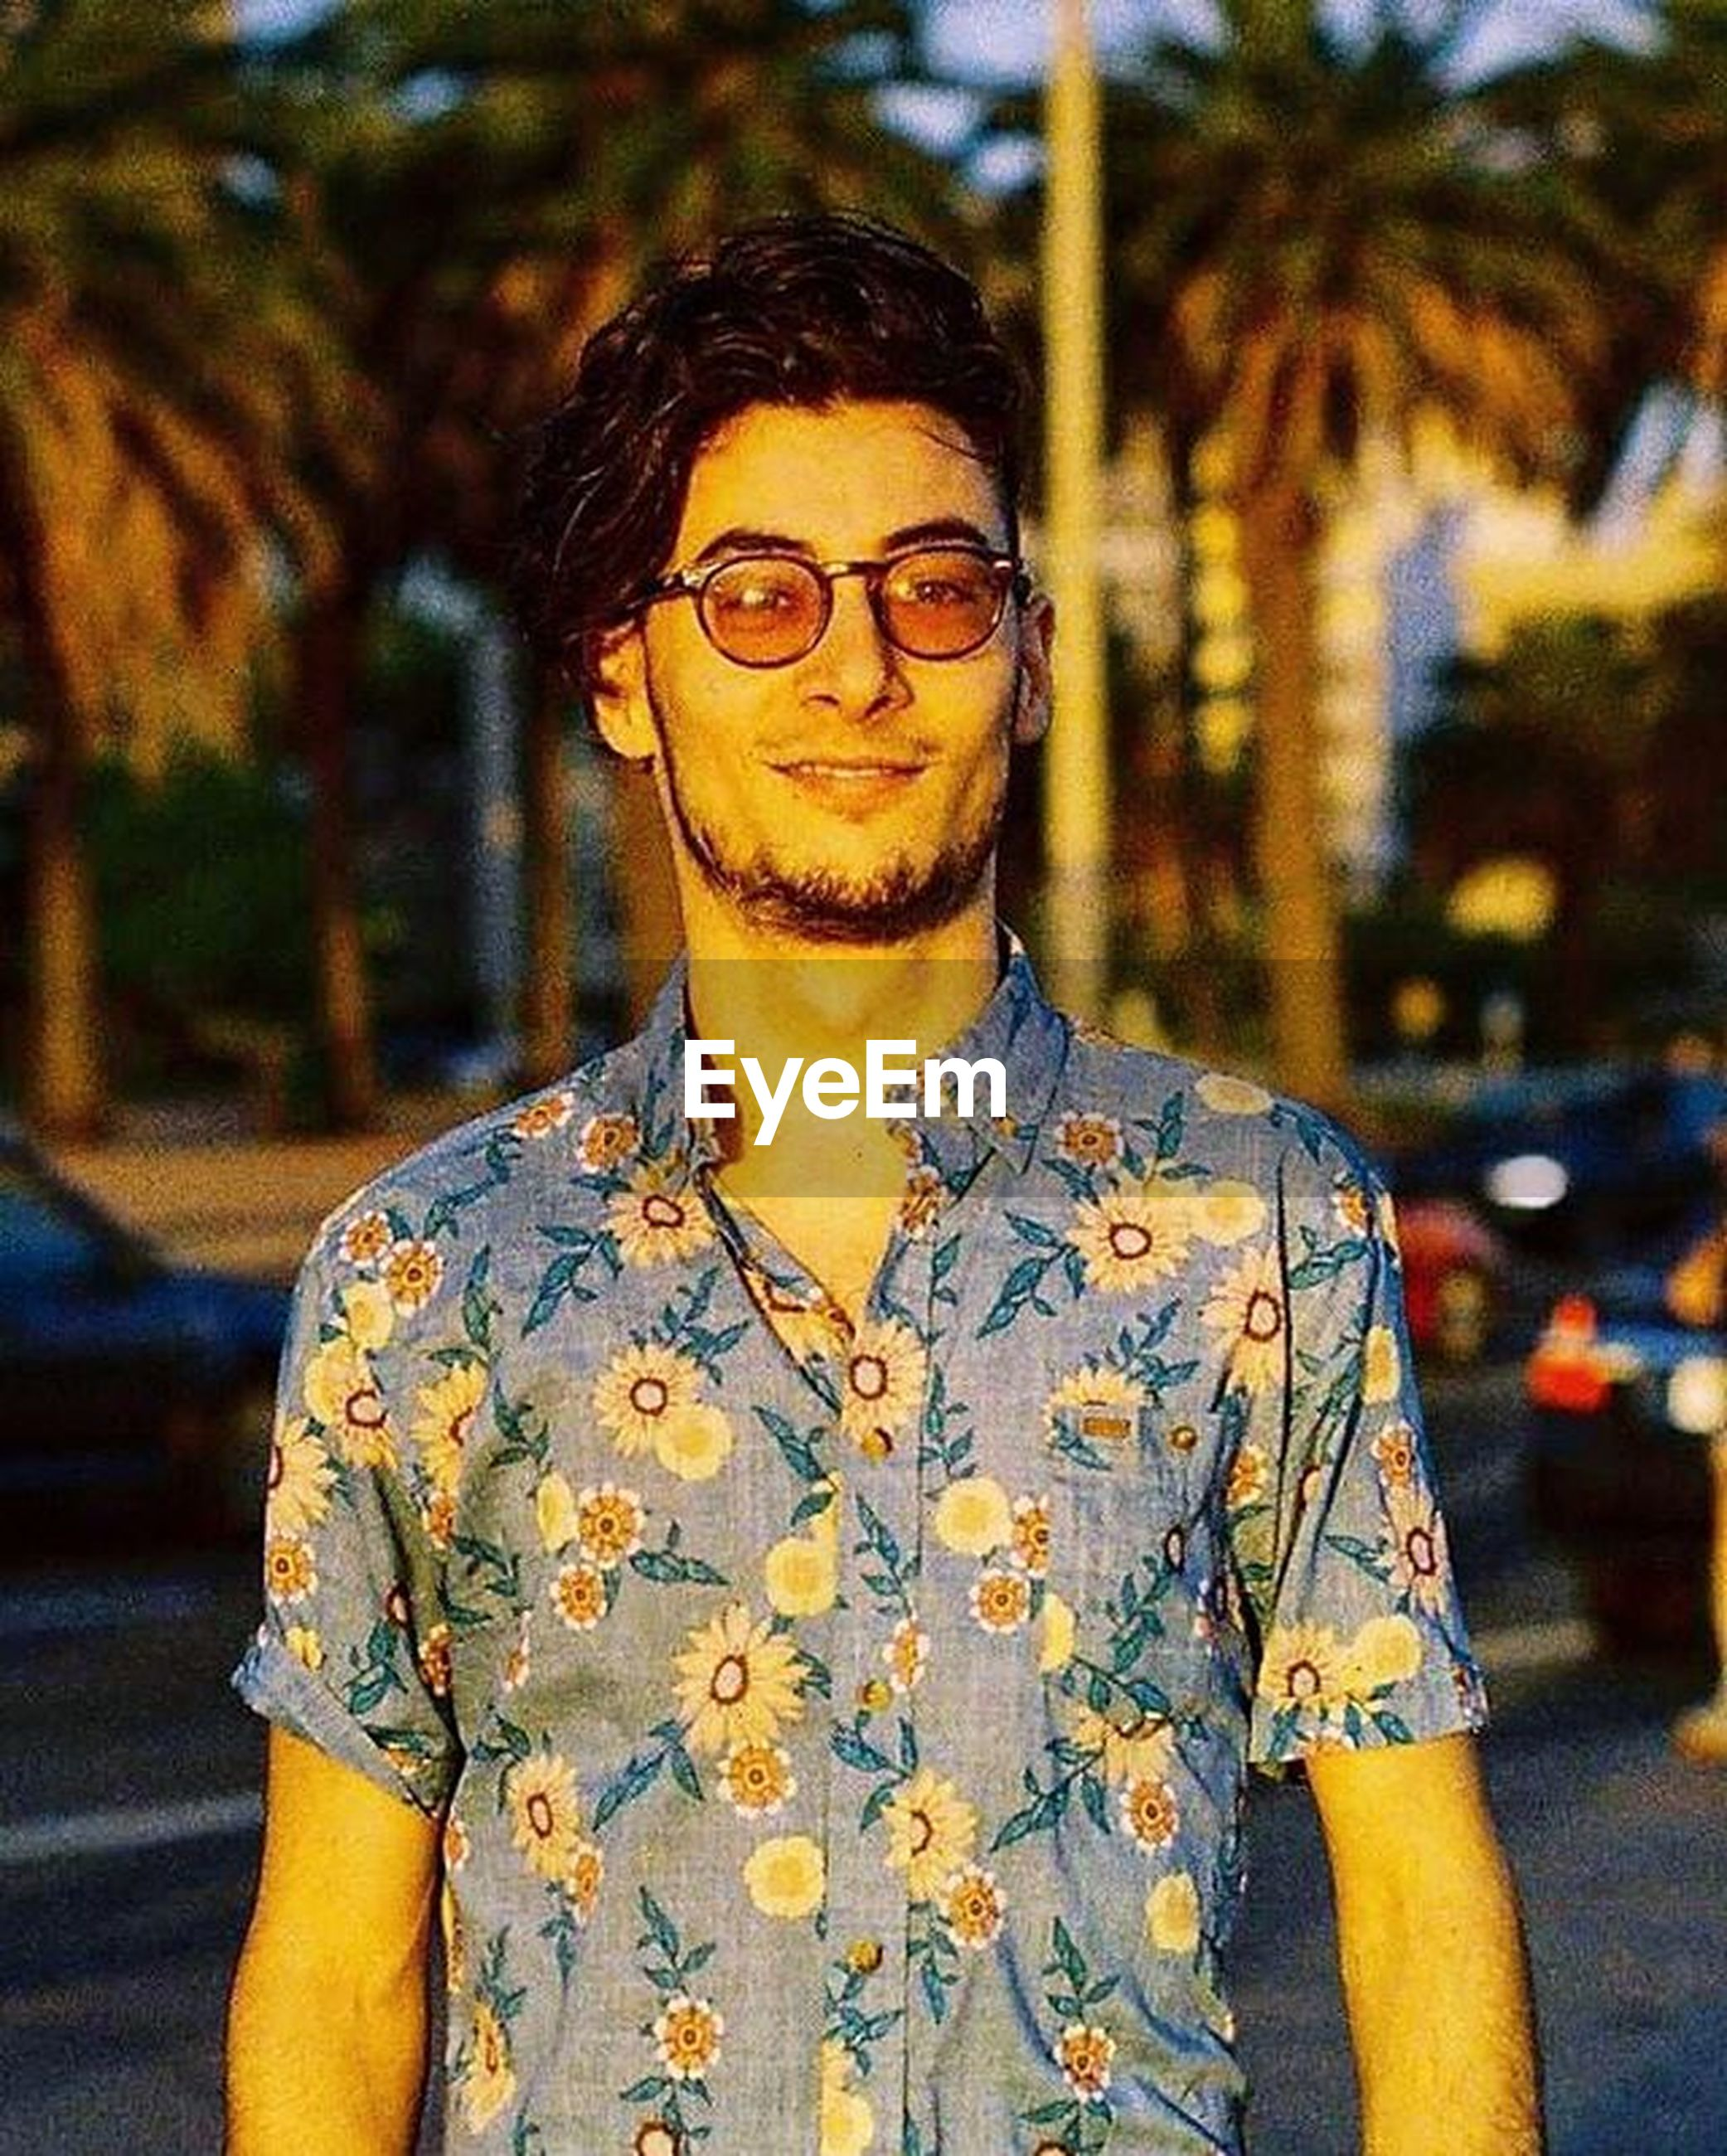 lifestyles, front view, focus on foreground, casual clothing, person, young adult, looking at camera, leisure activity, standing, portrait, young men, sunglasses, waist up, close-up, three quarter length, headshot, handsome, smiling